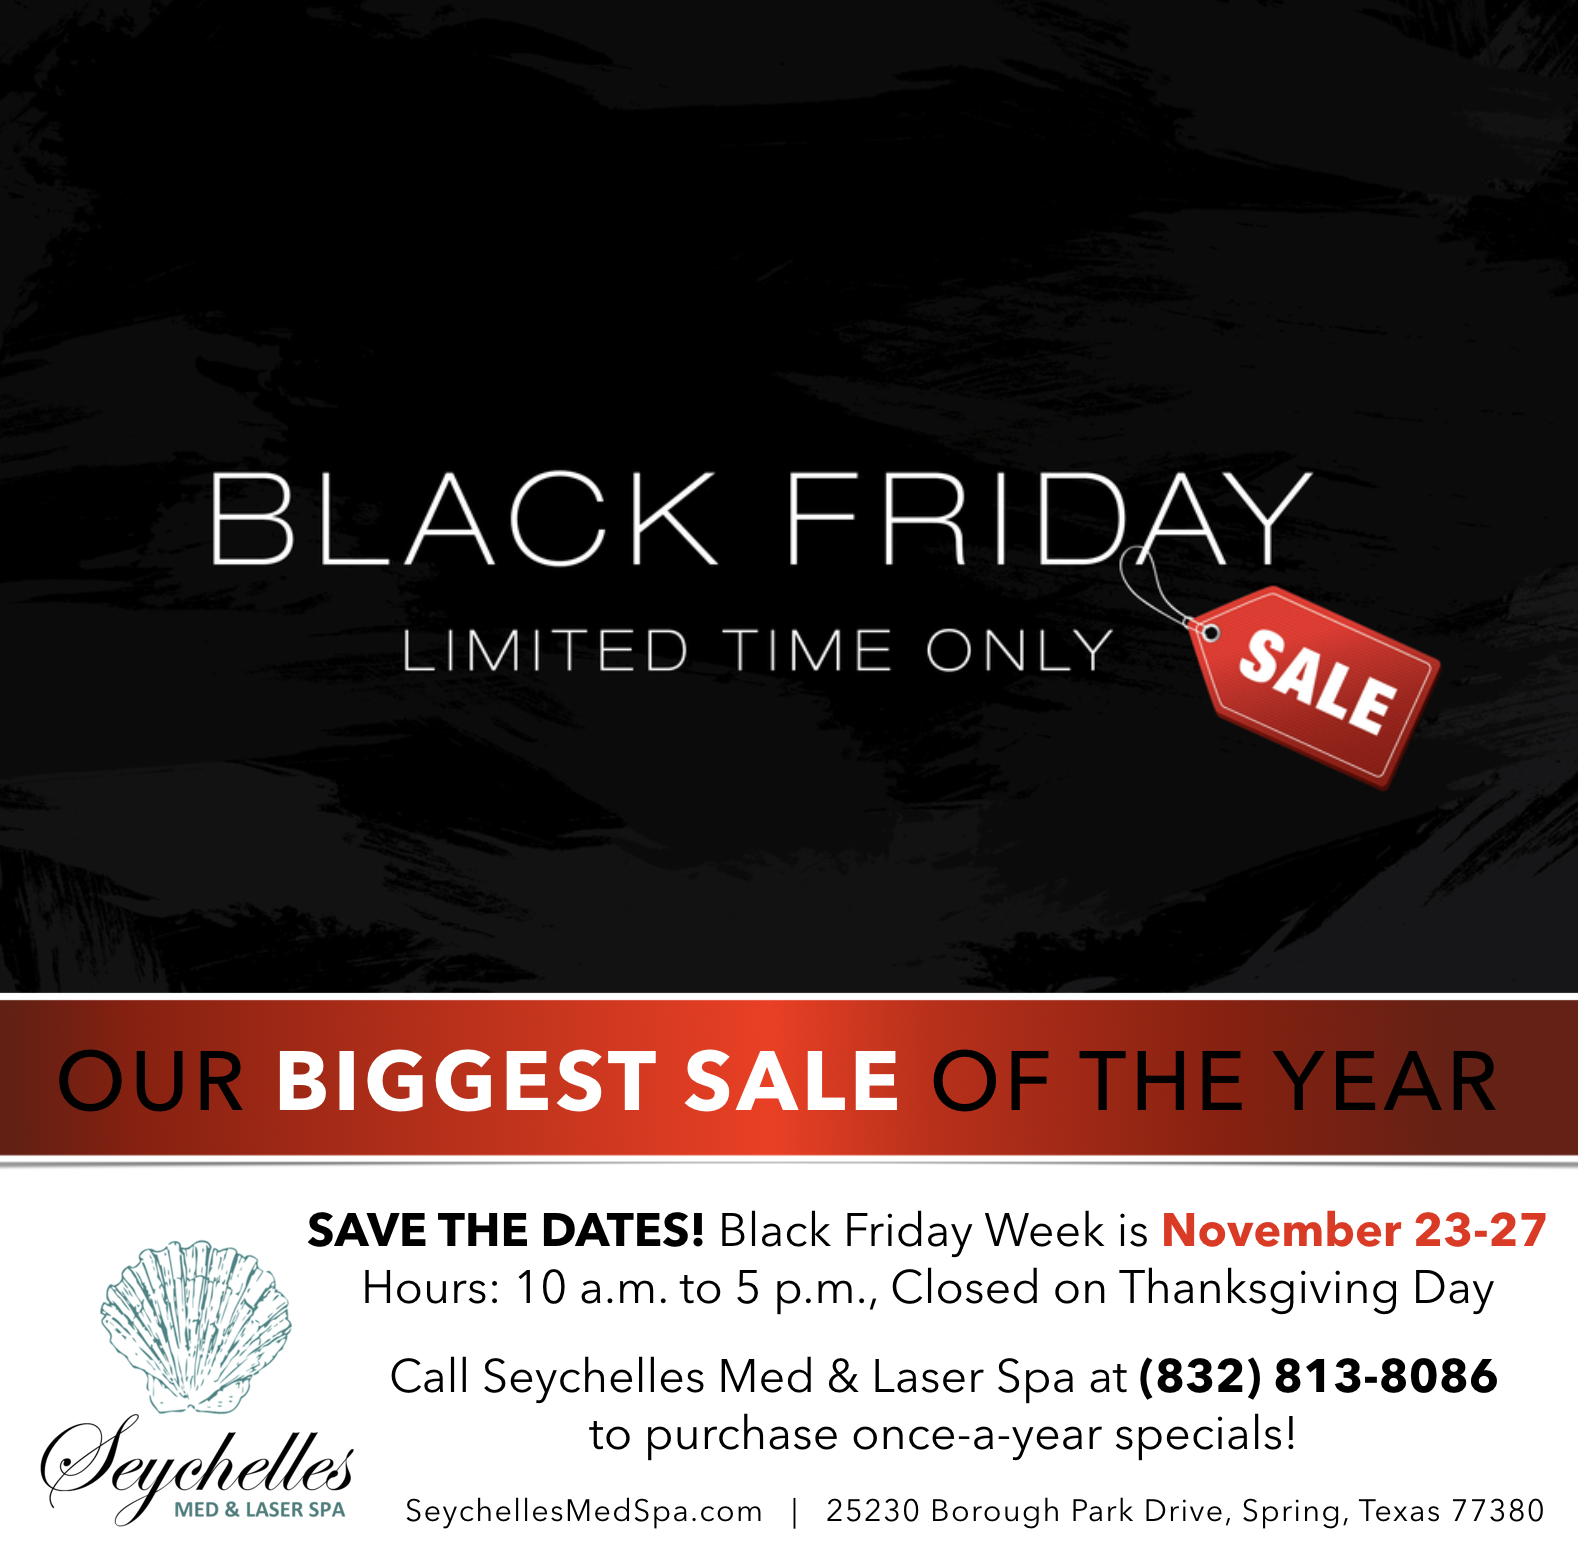 Black Friday Seychelles Med & Laser Spa